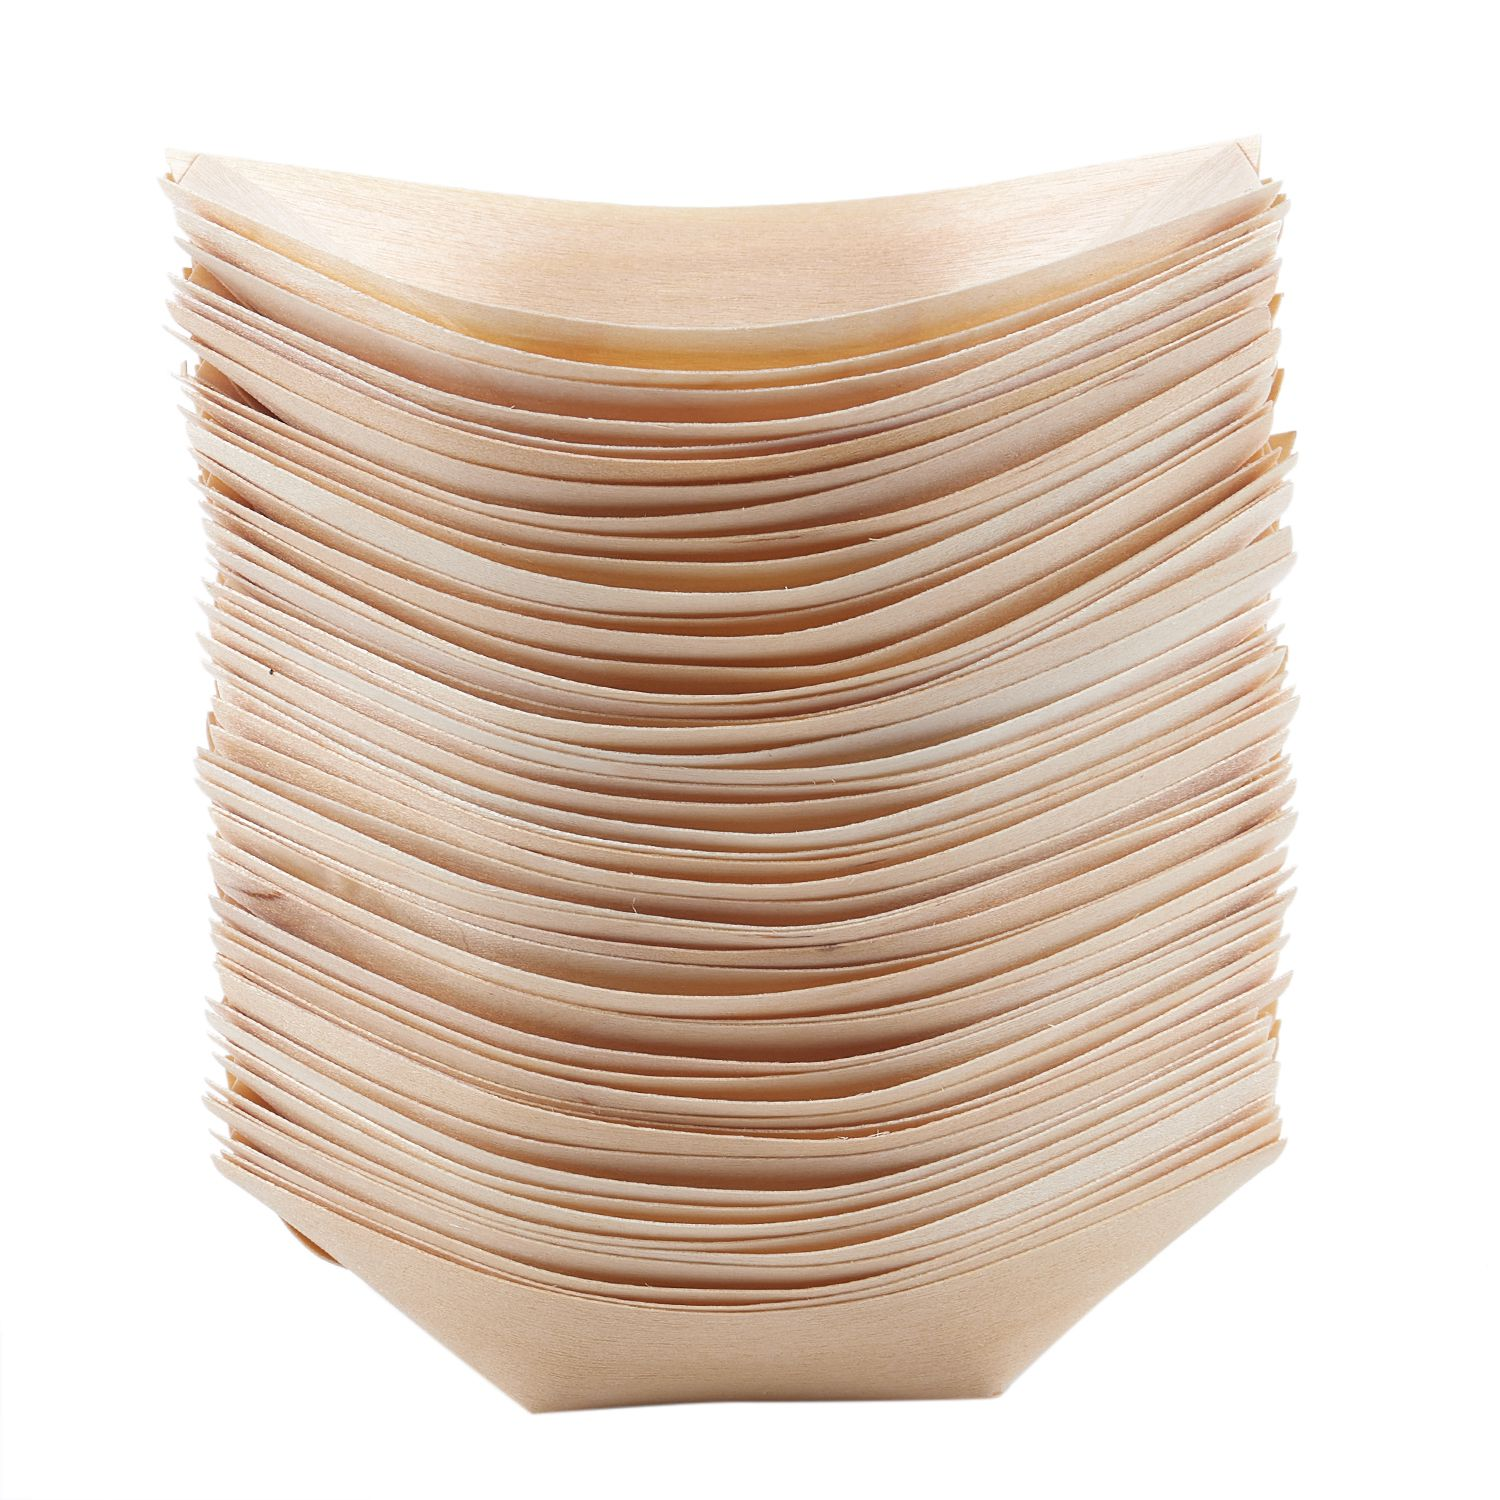 50x finger food - bowls, boat biodegradable wood cake tool bar accessory disposable party tableware50x finger food - bowls, boat biodegradable wood cake tool bar accessory disposable party tableware